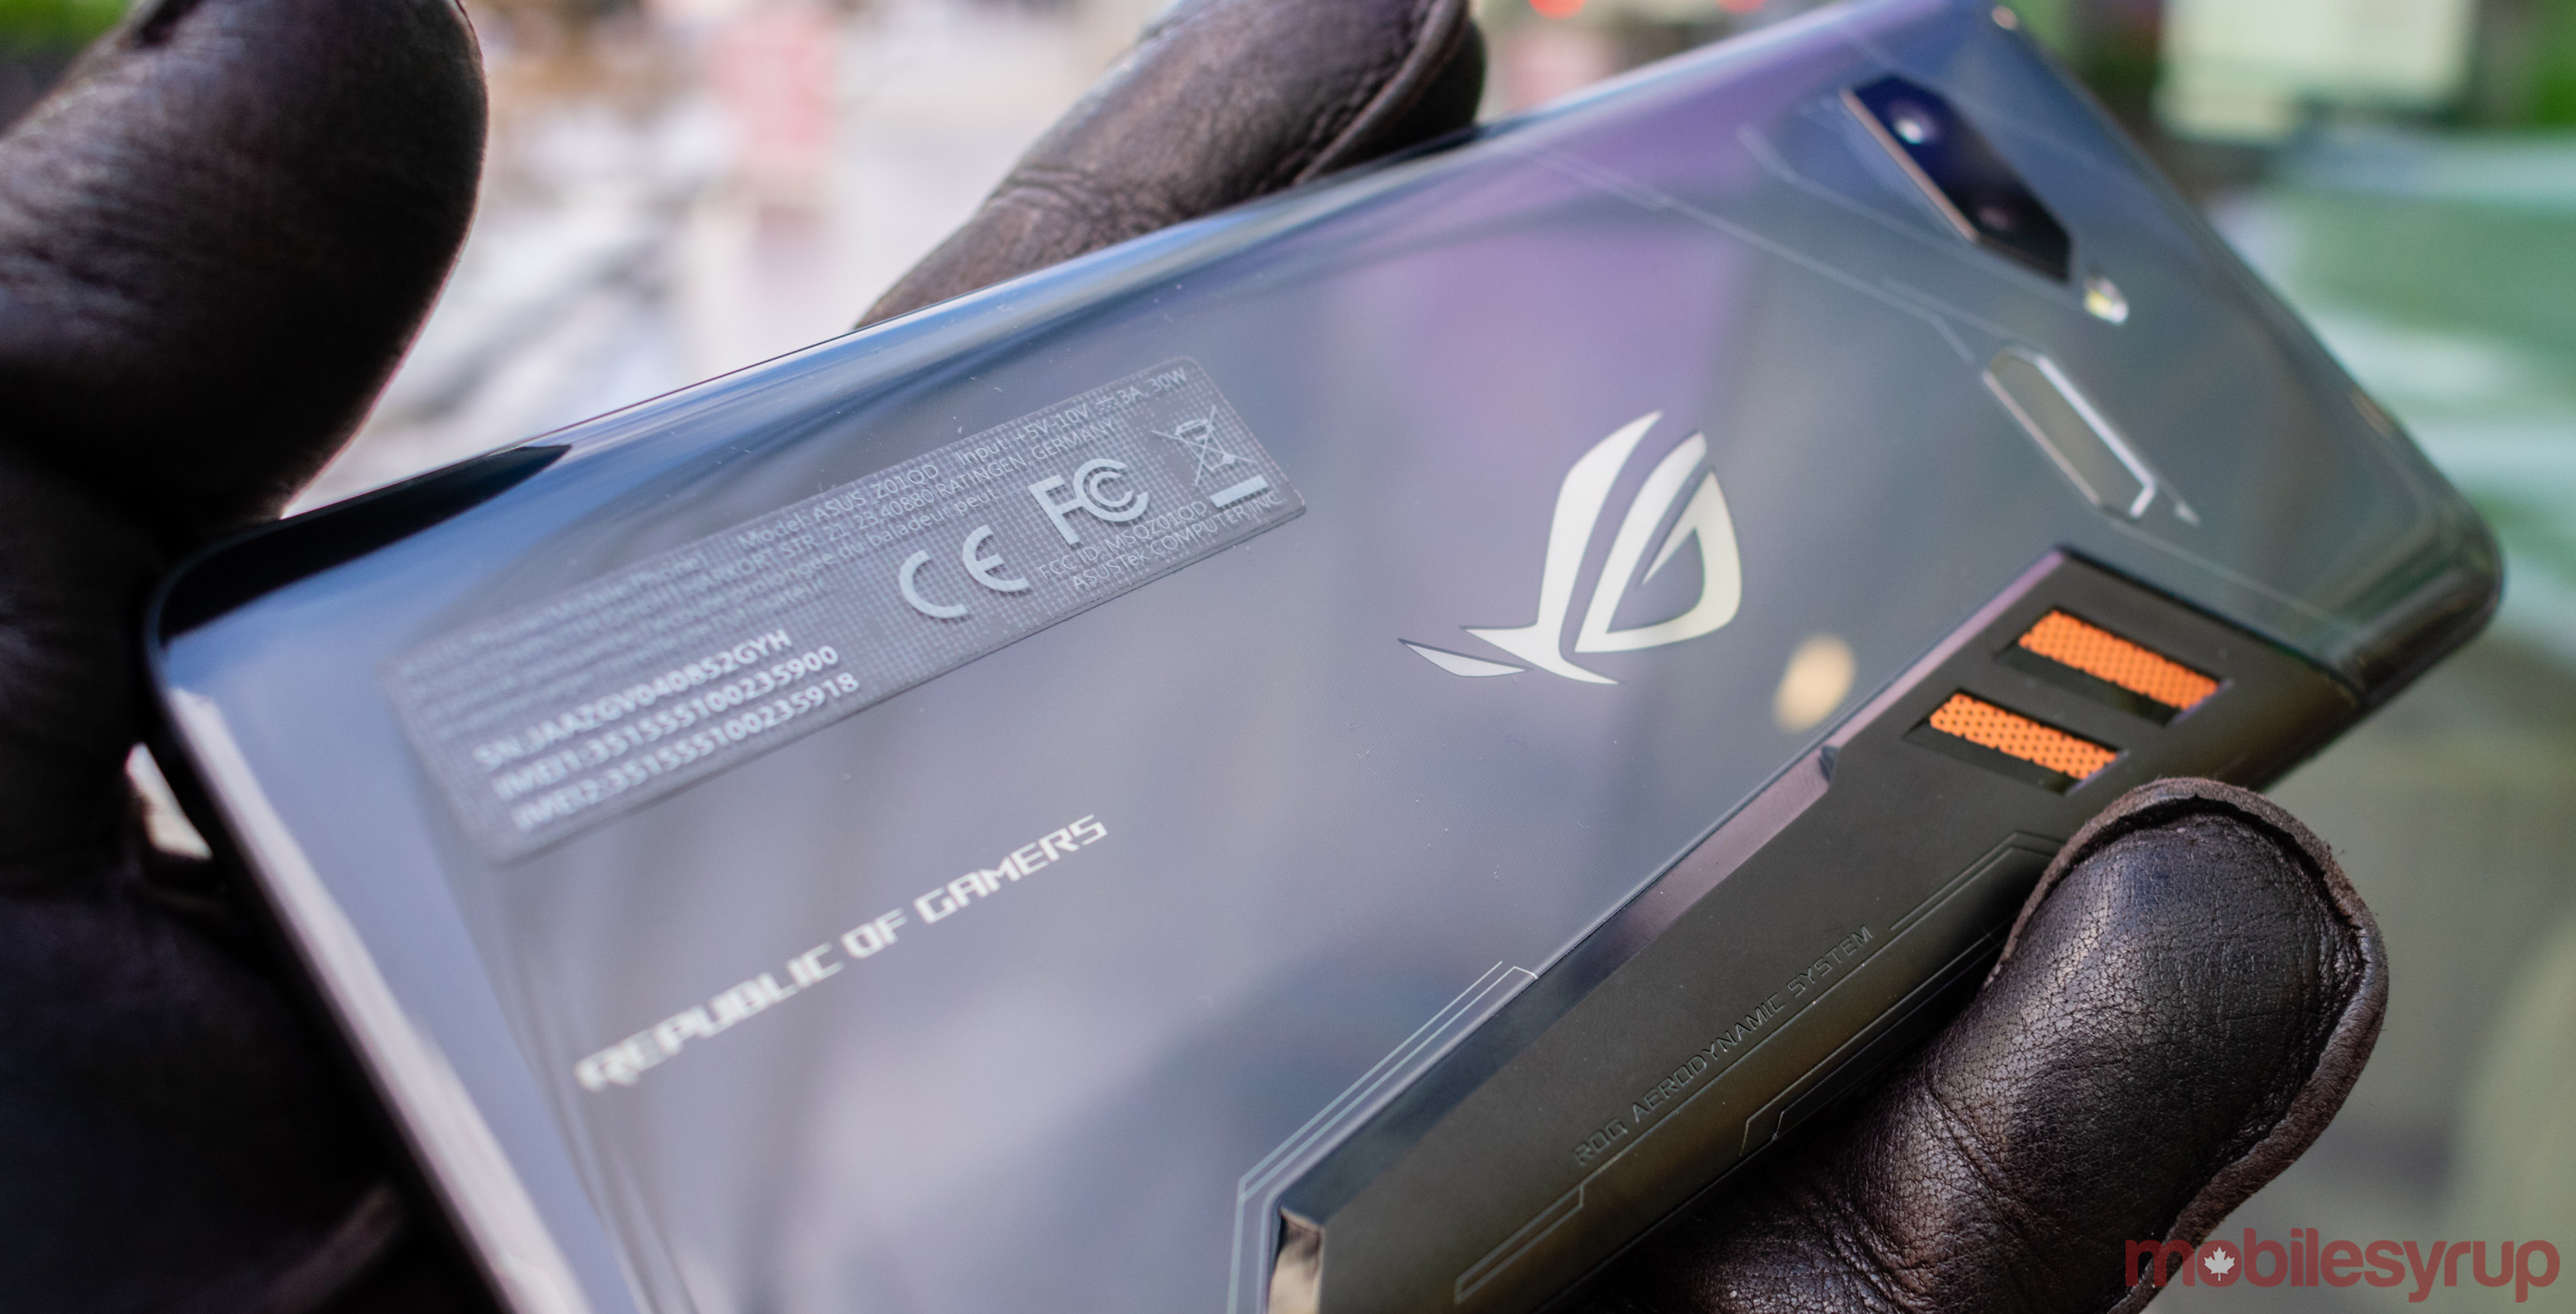 Asus partners with Tencent Games to create ROG Phone II